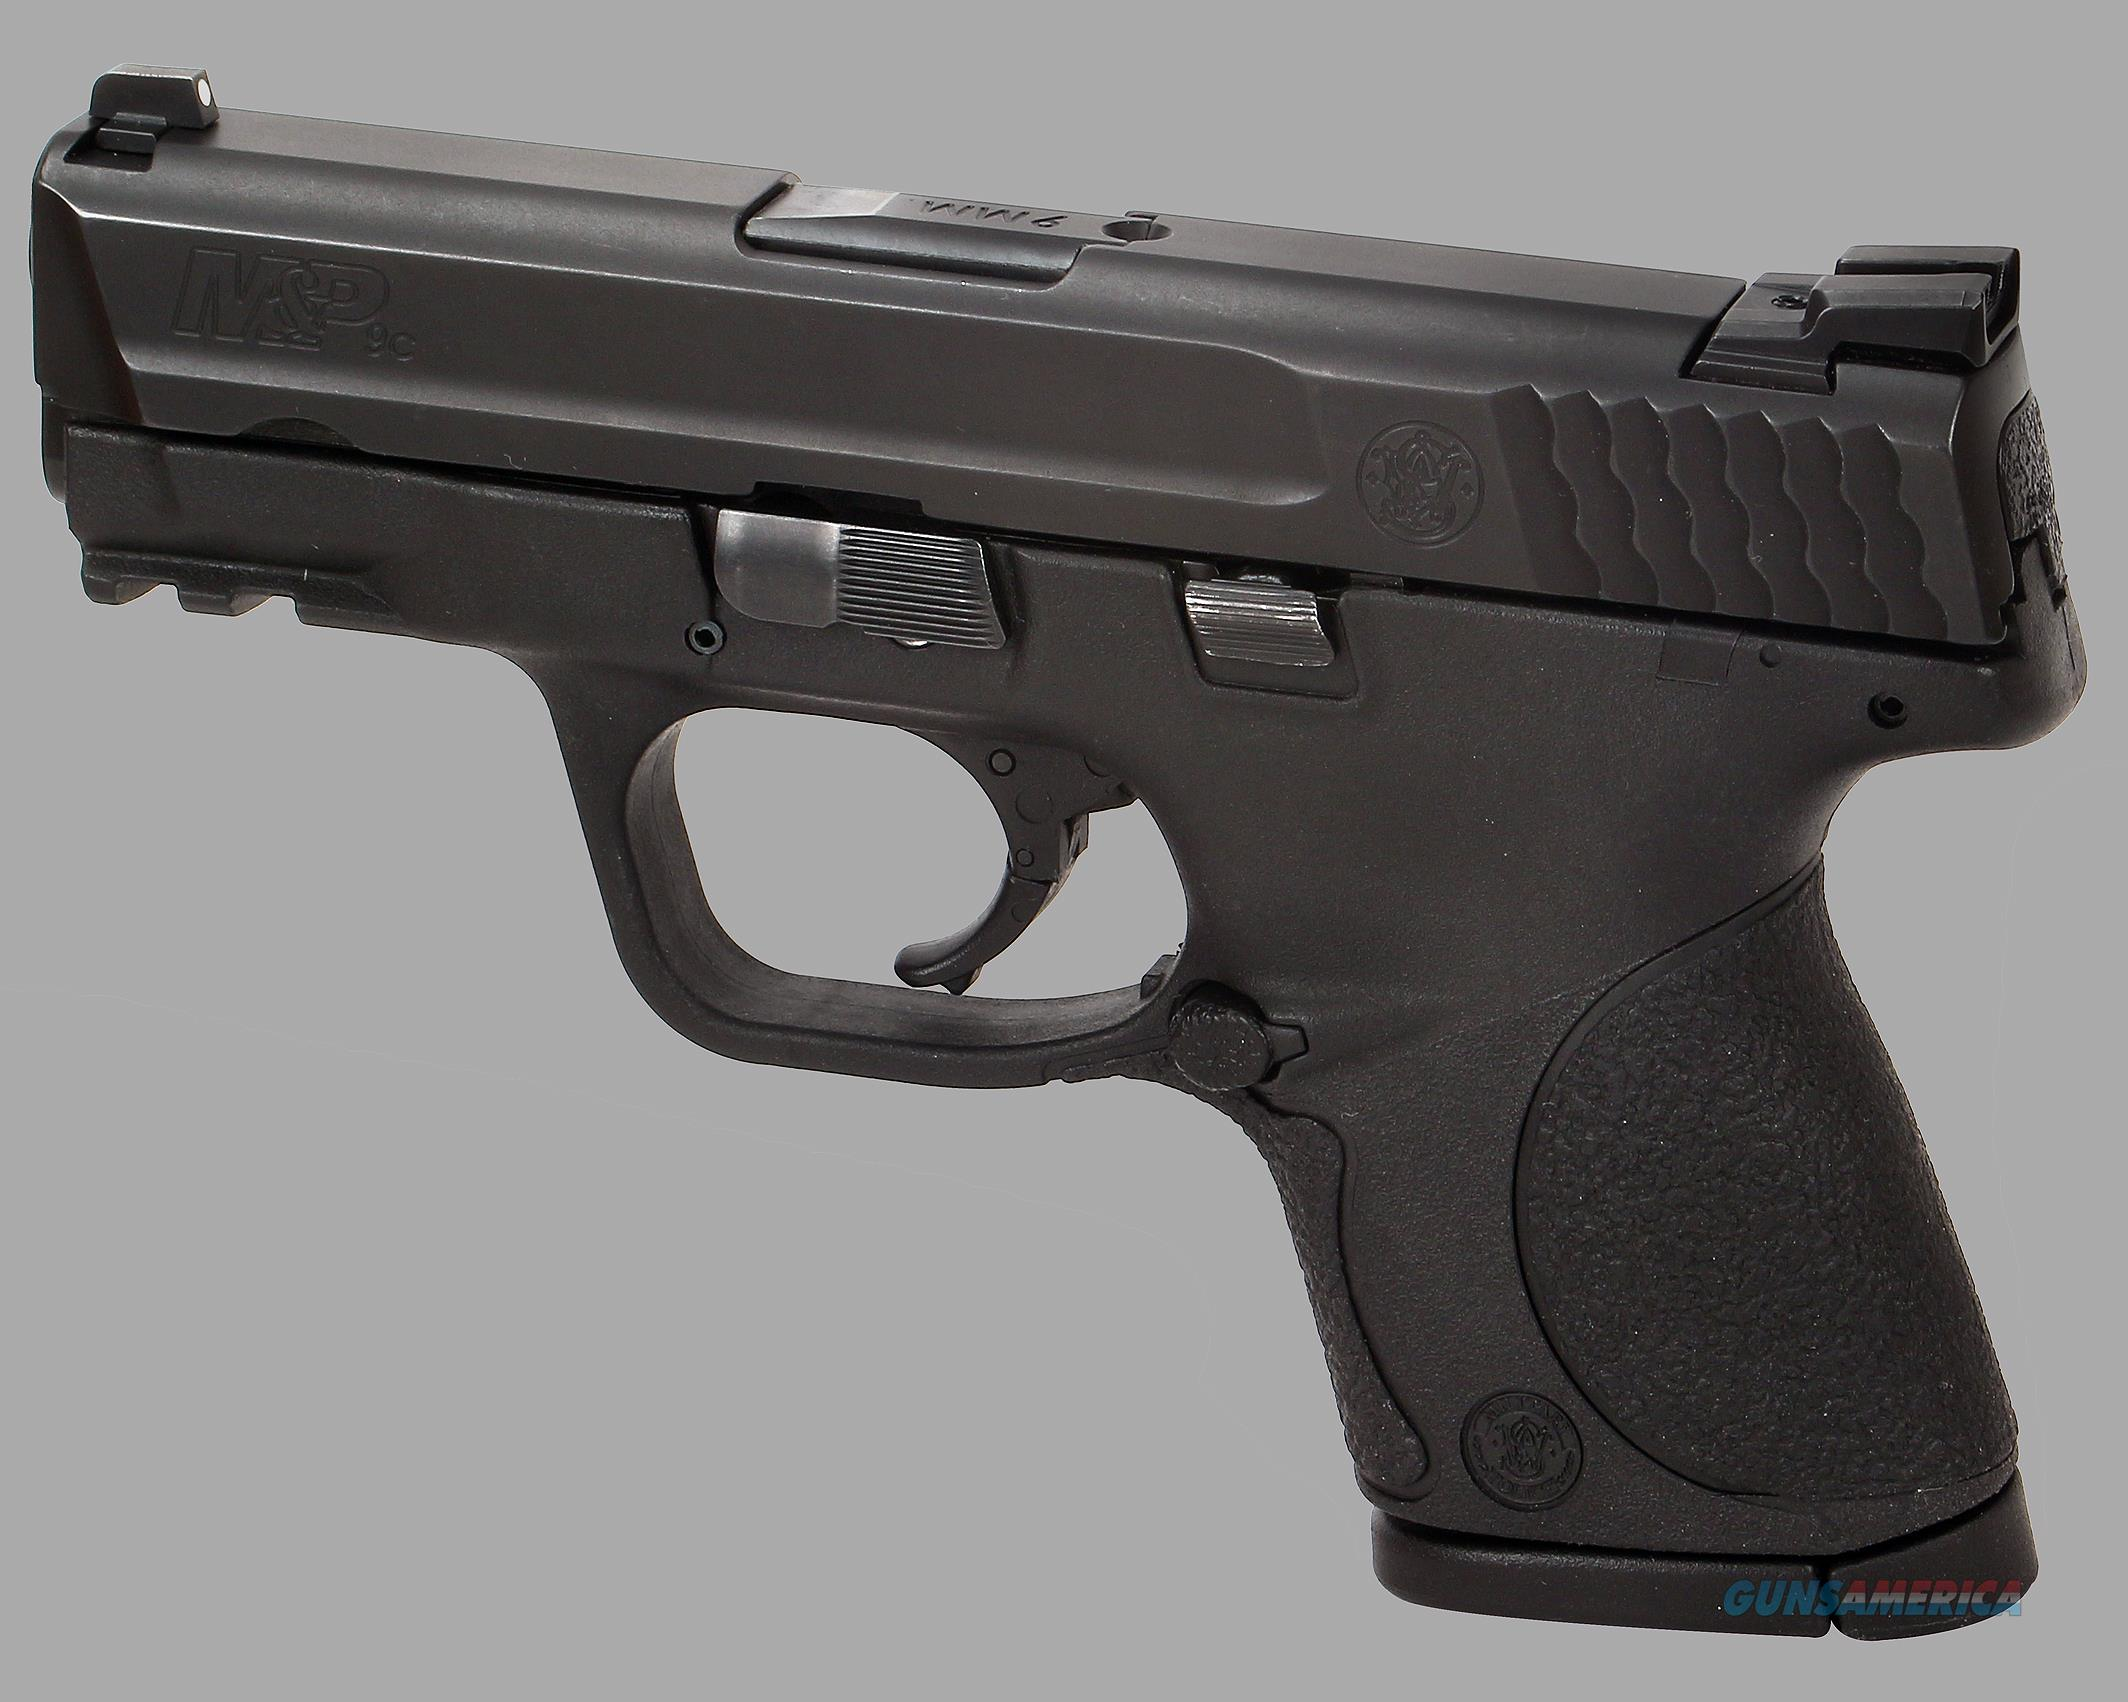 Smith & Wesson 9mm M&P Pistol  Guns > Pistols > Smith & Wesson Pistols - Autos > Polymer Frame